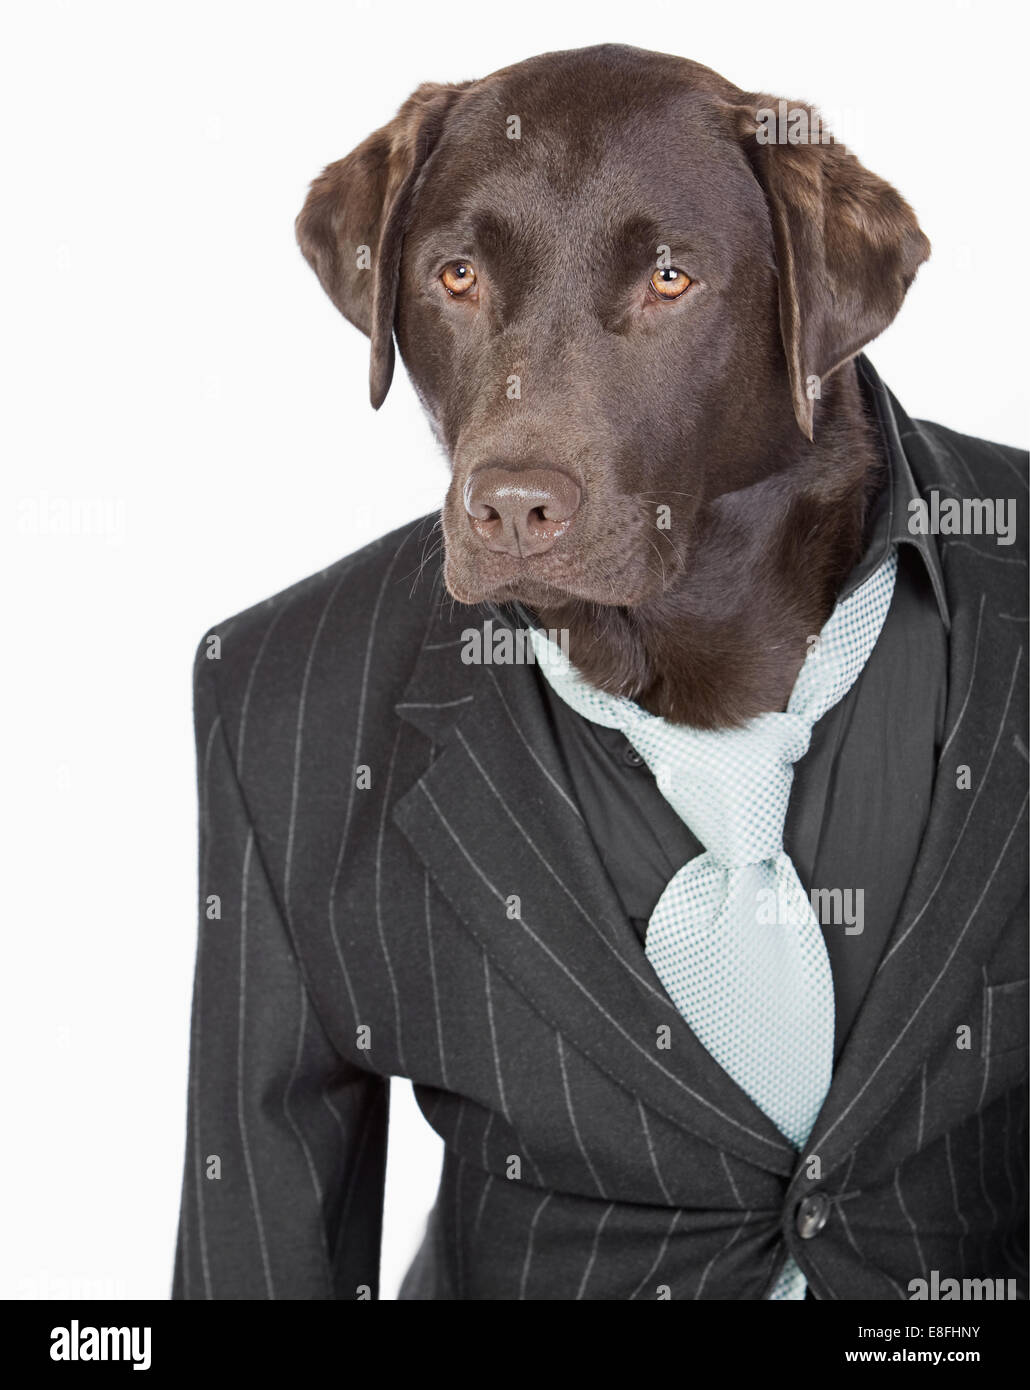 Isolated Shot of a Smart Chocolate Labrador in Pinstripe Jacket - Stock Image